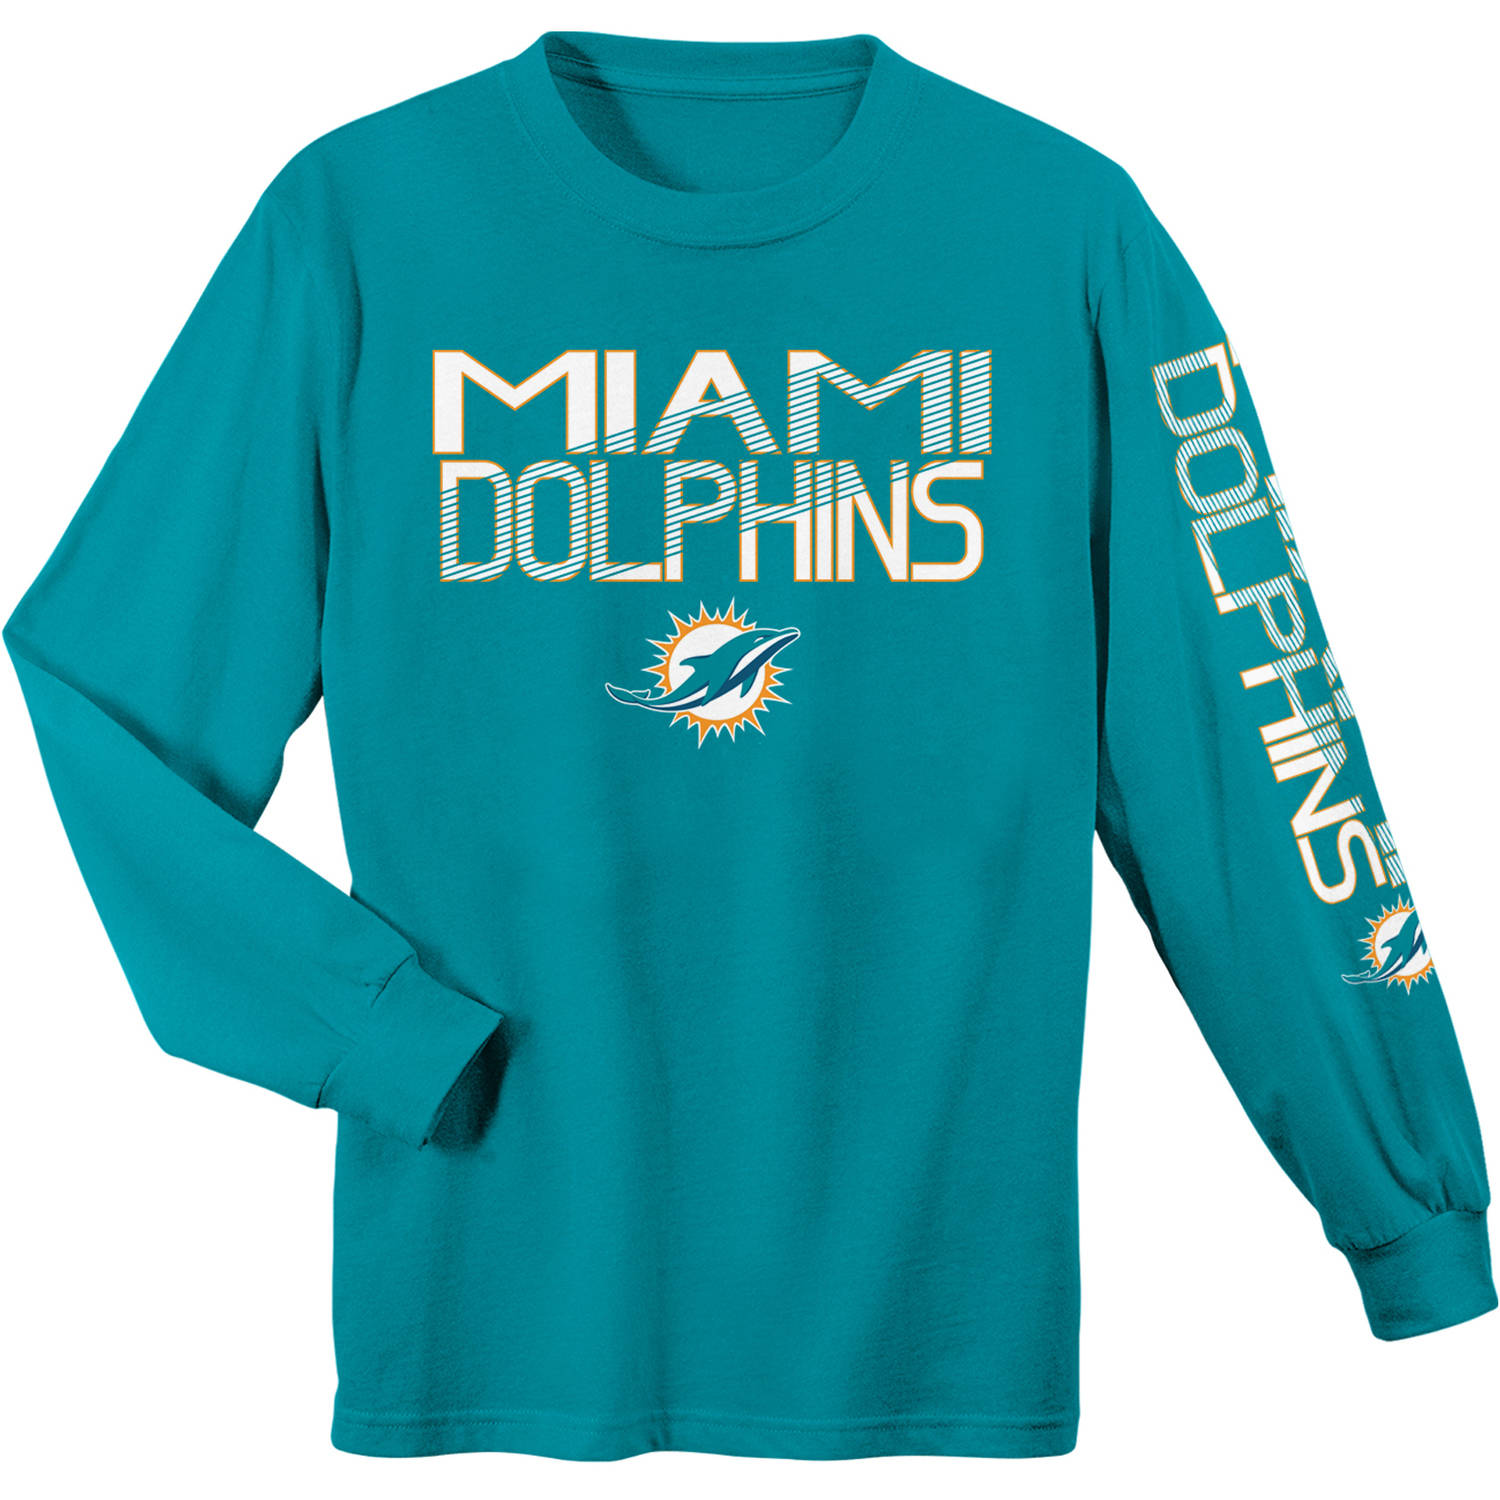 NFL Miami Dolphins Youth Long Sleeve Cotton Tee